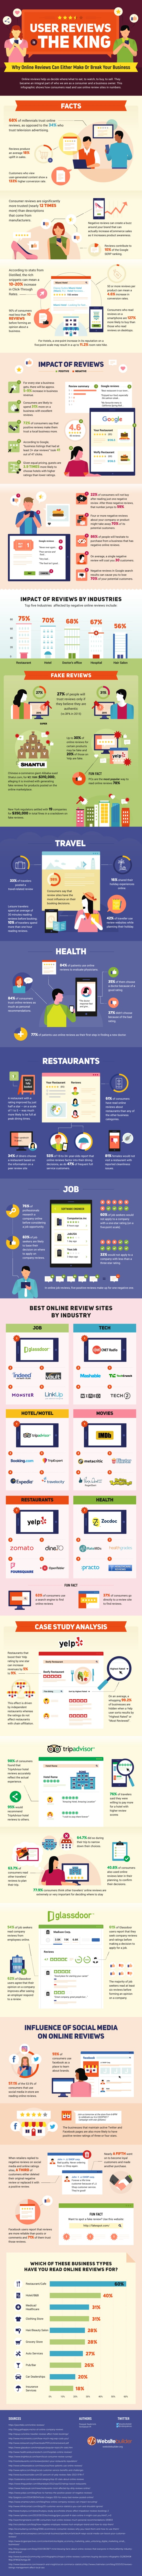 Why Online Reviews Can Either Make Or Break Your Business! via Jennifer Hanford